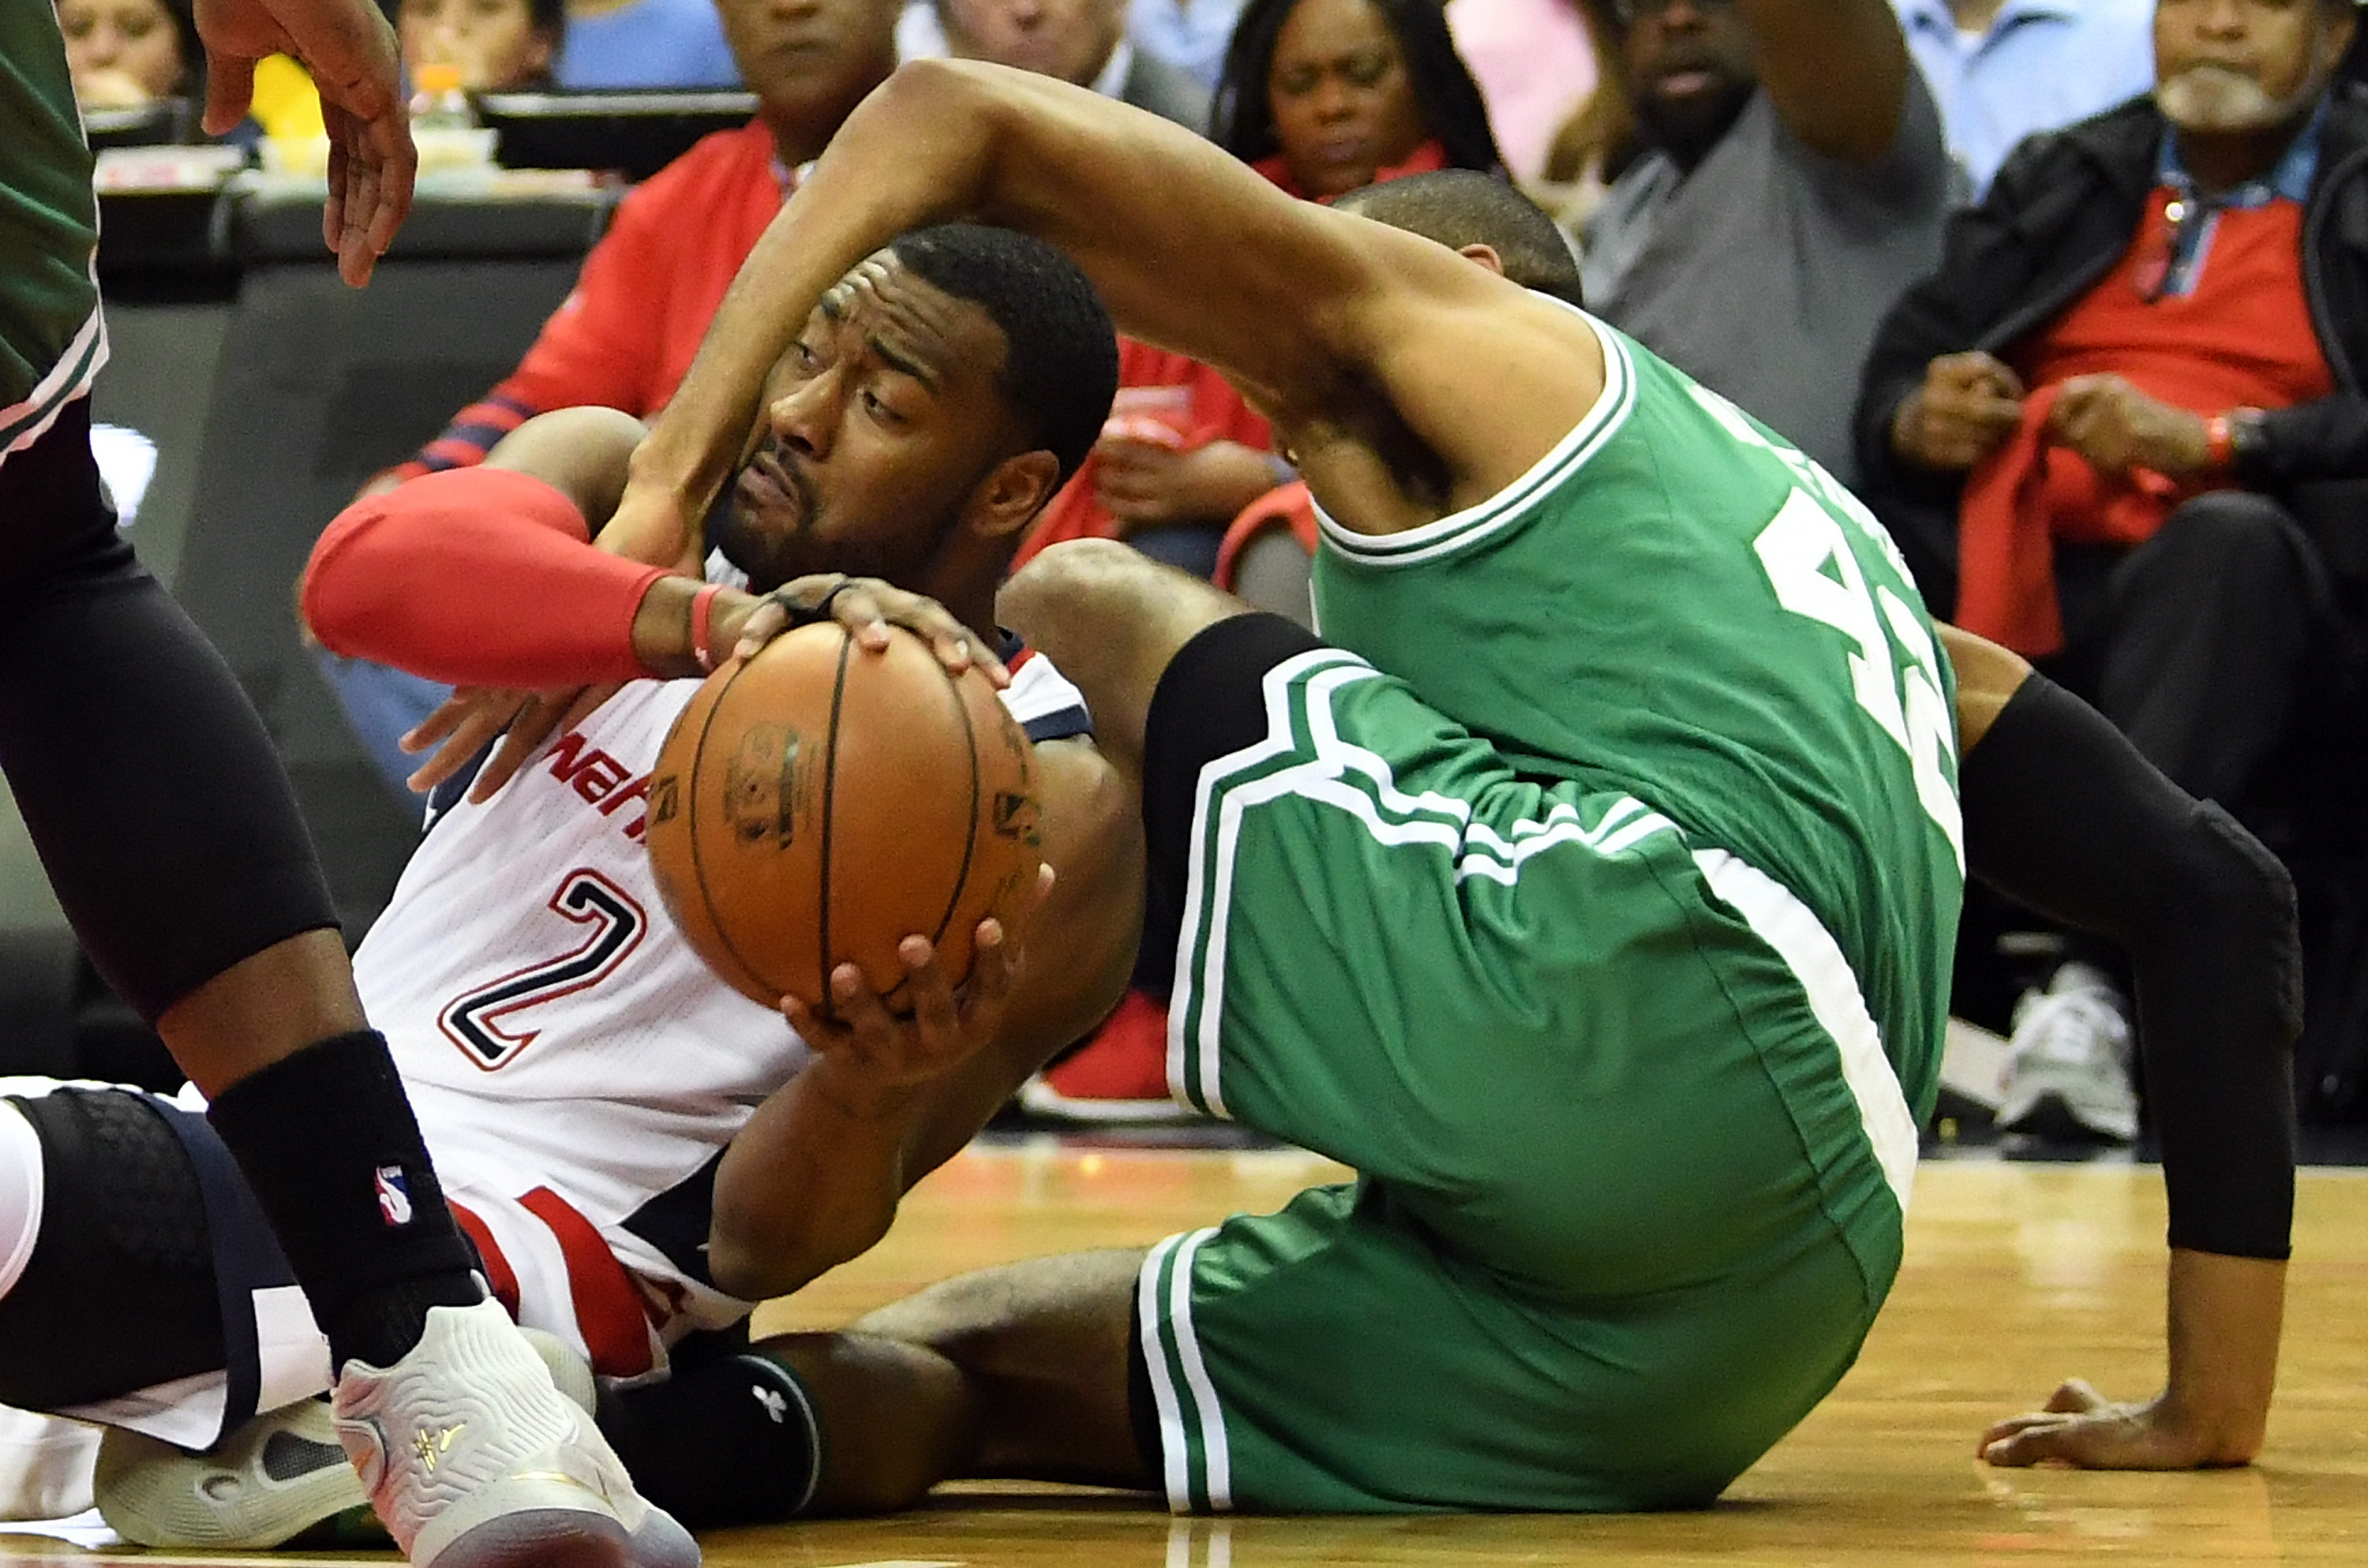 Boston Celtics vs. Washington Wizards Game 6